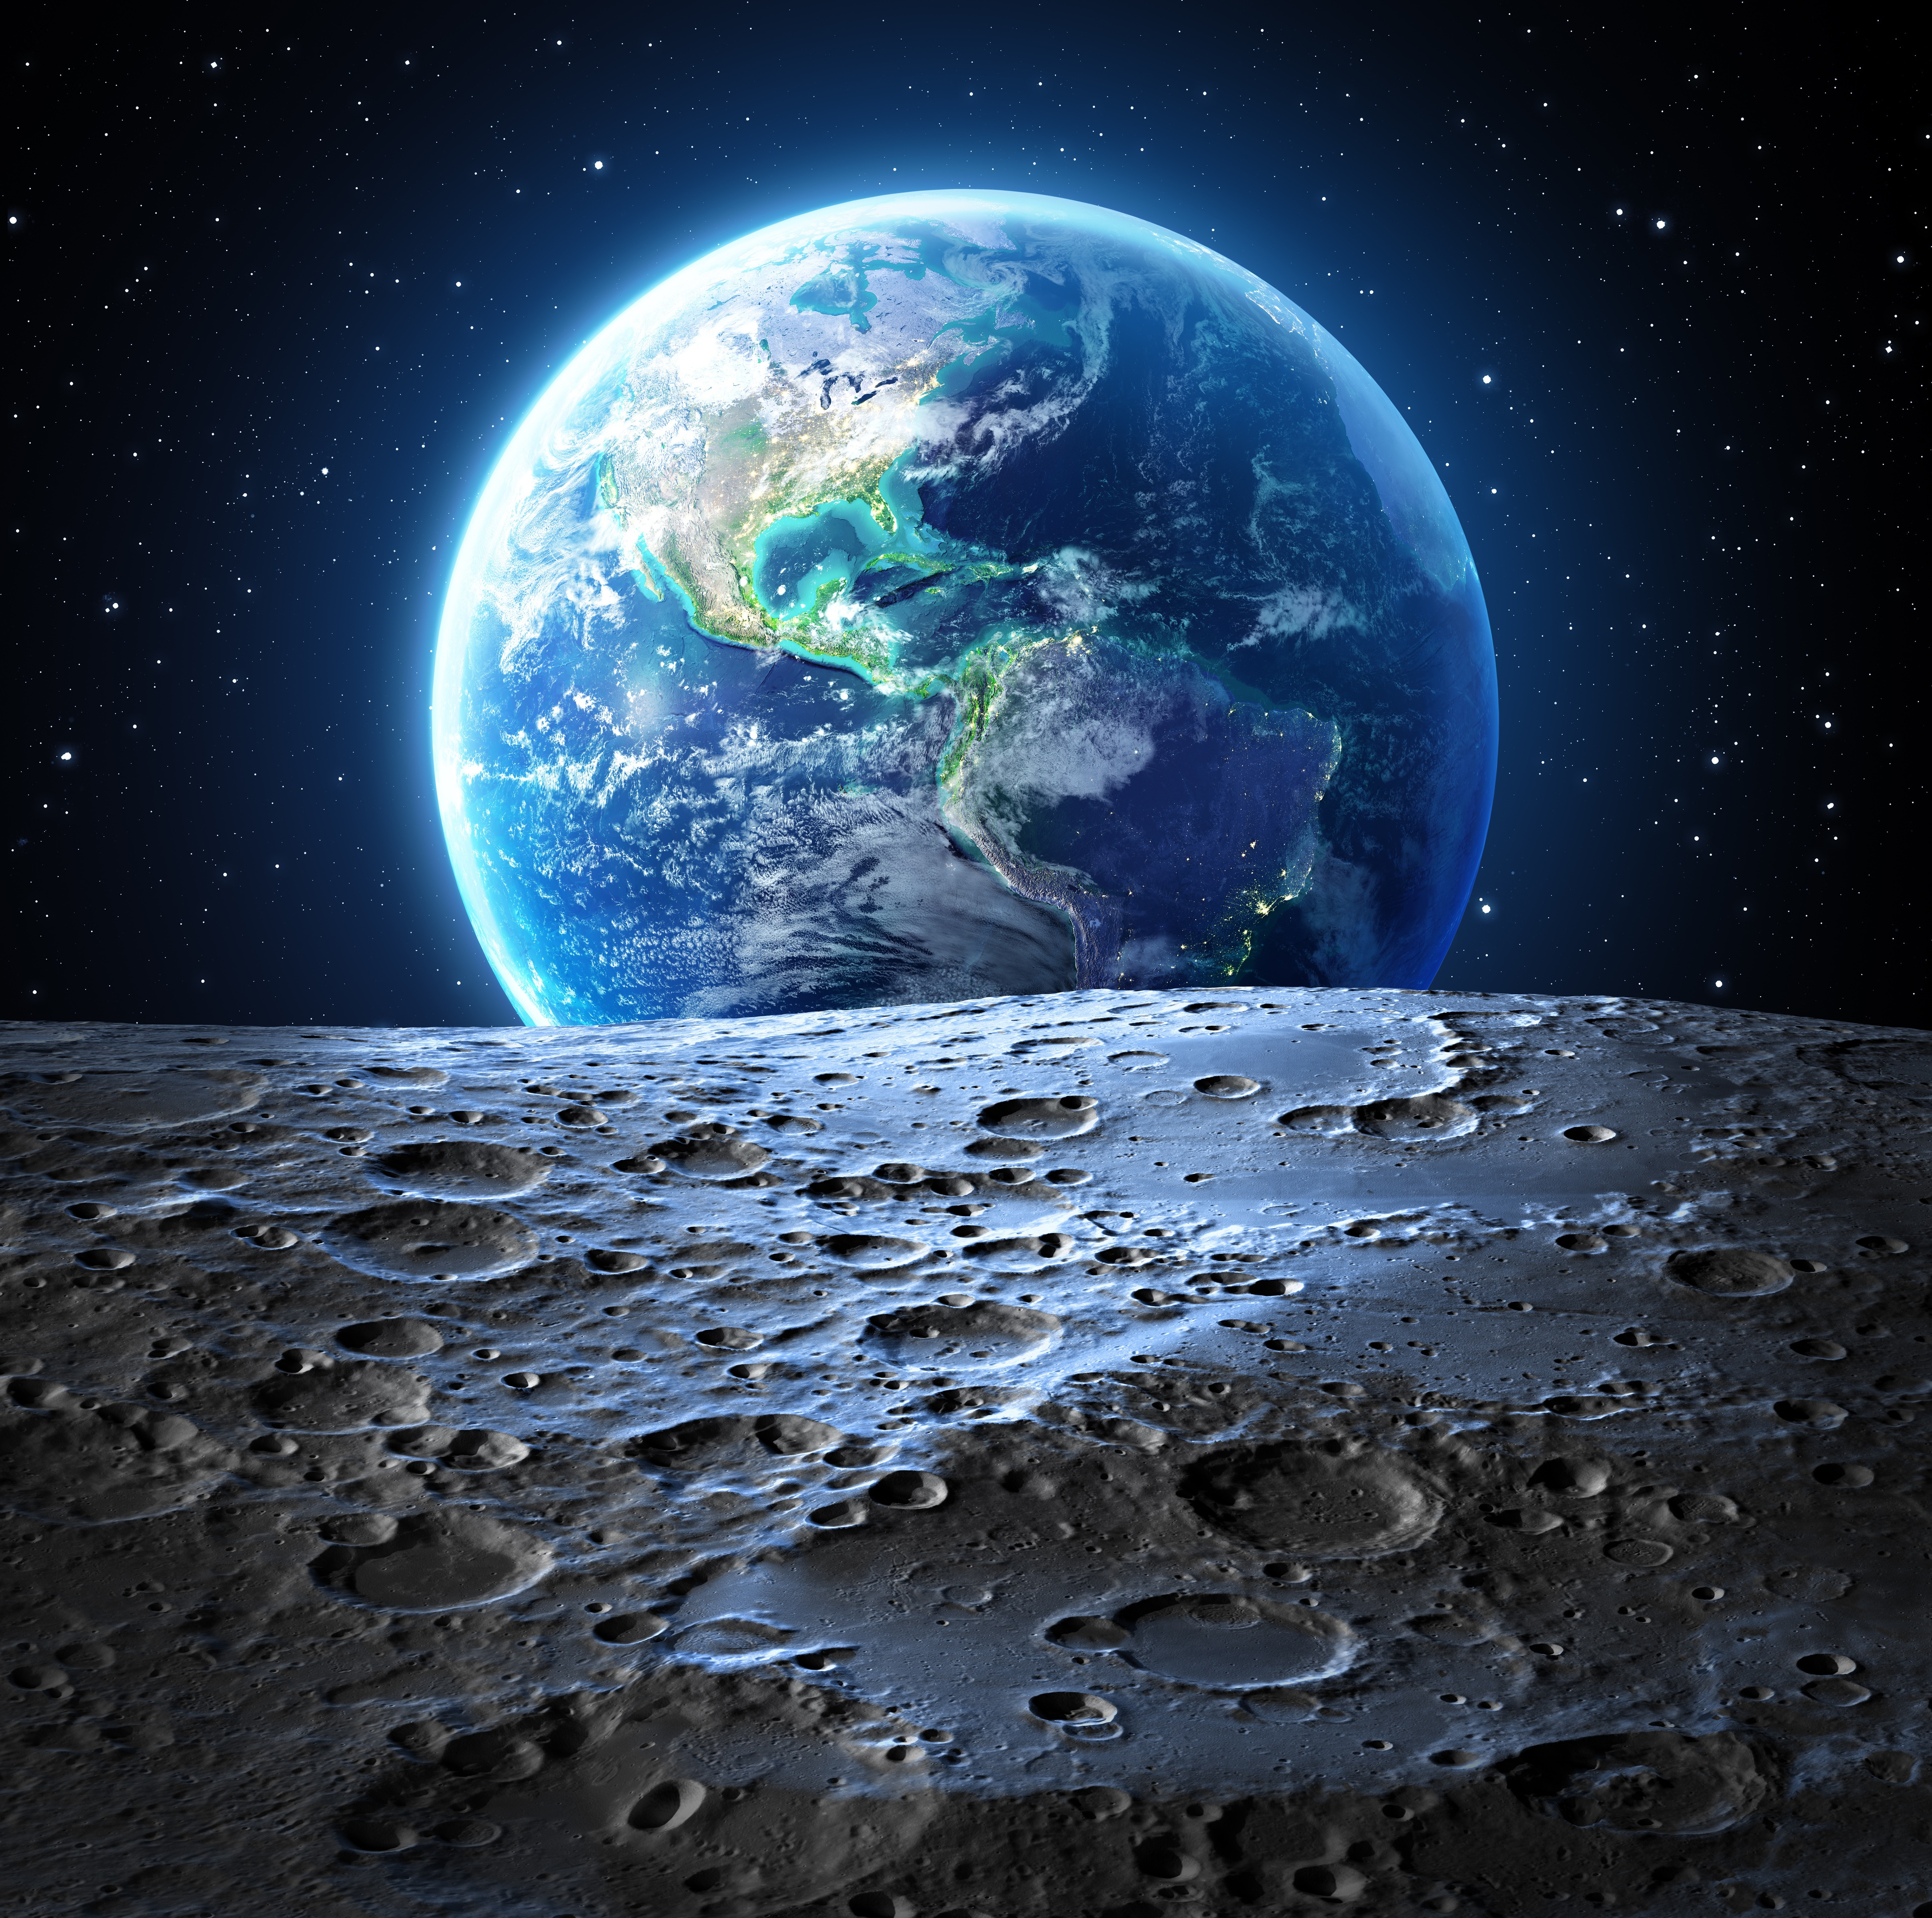 Wallpaper Planet Earth seen from the Moon